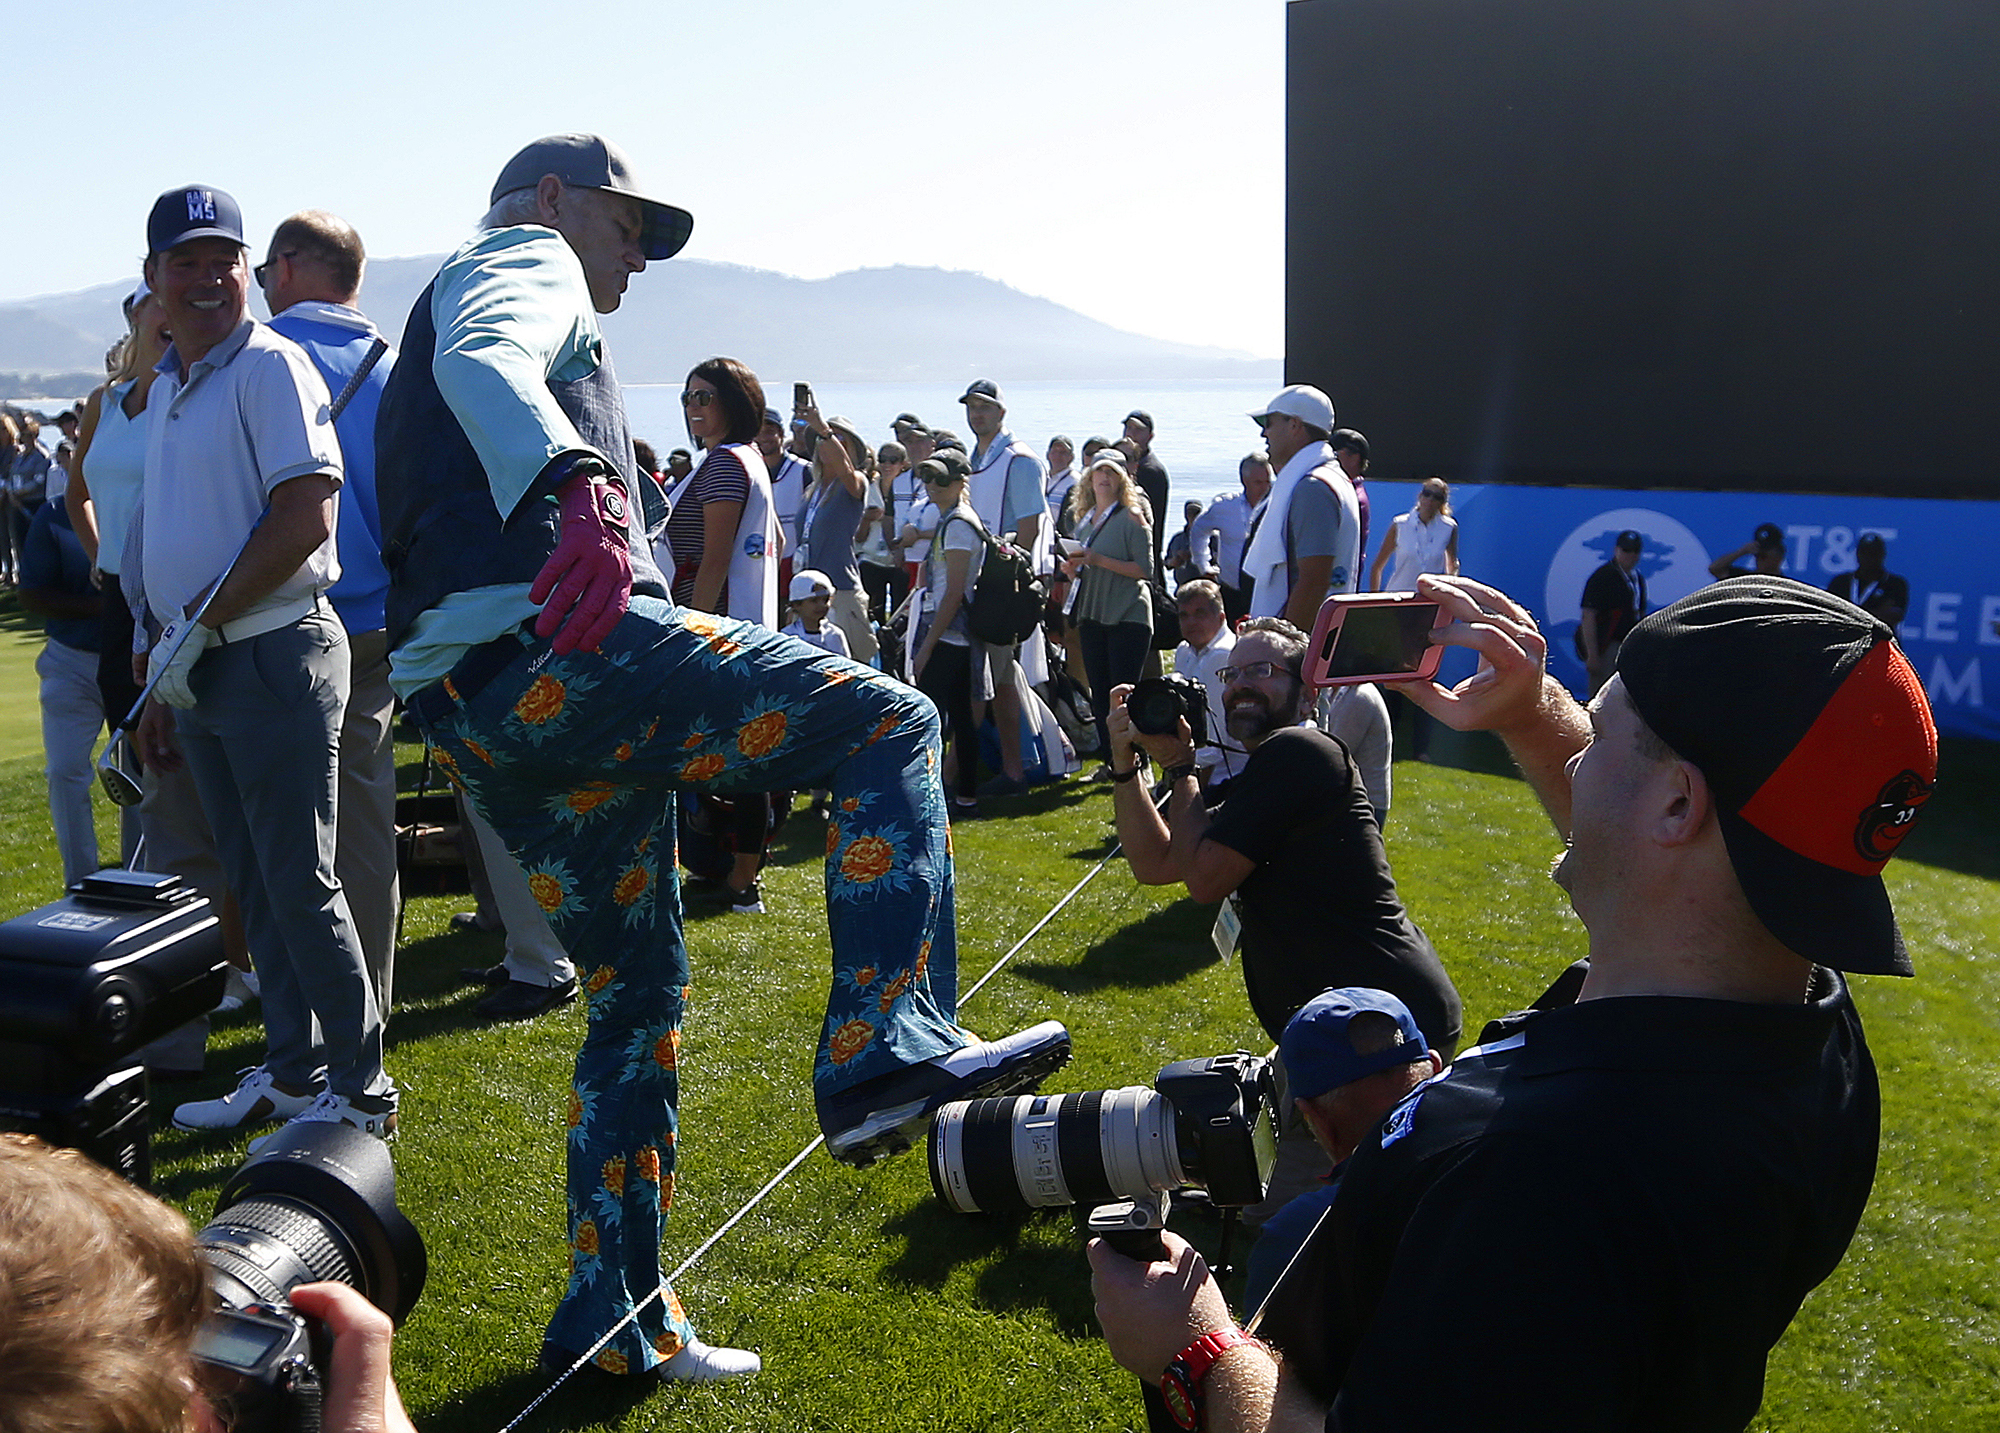 Percy lurks on PGA leaders at Pebble Beach